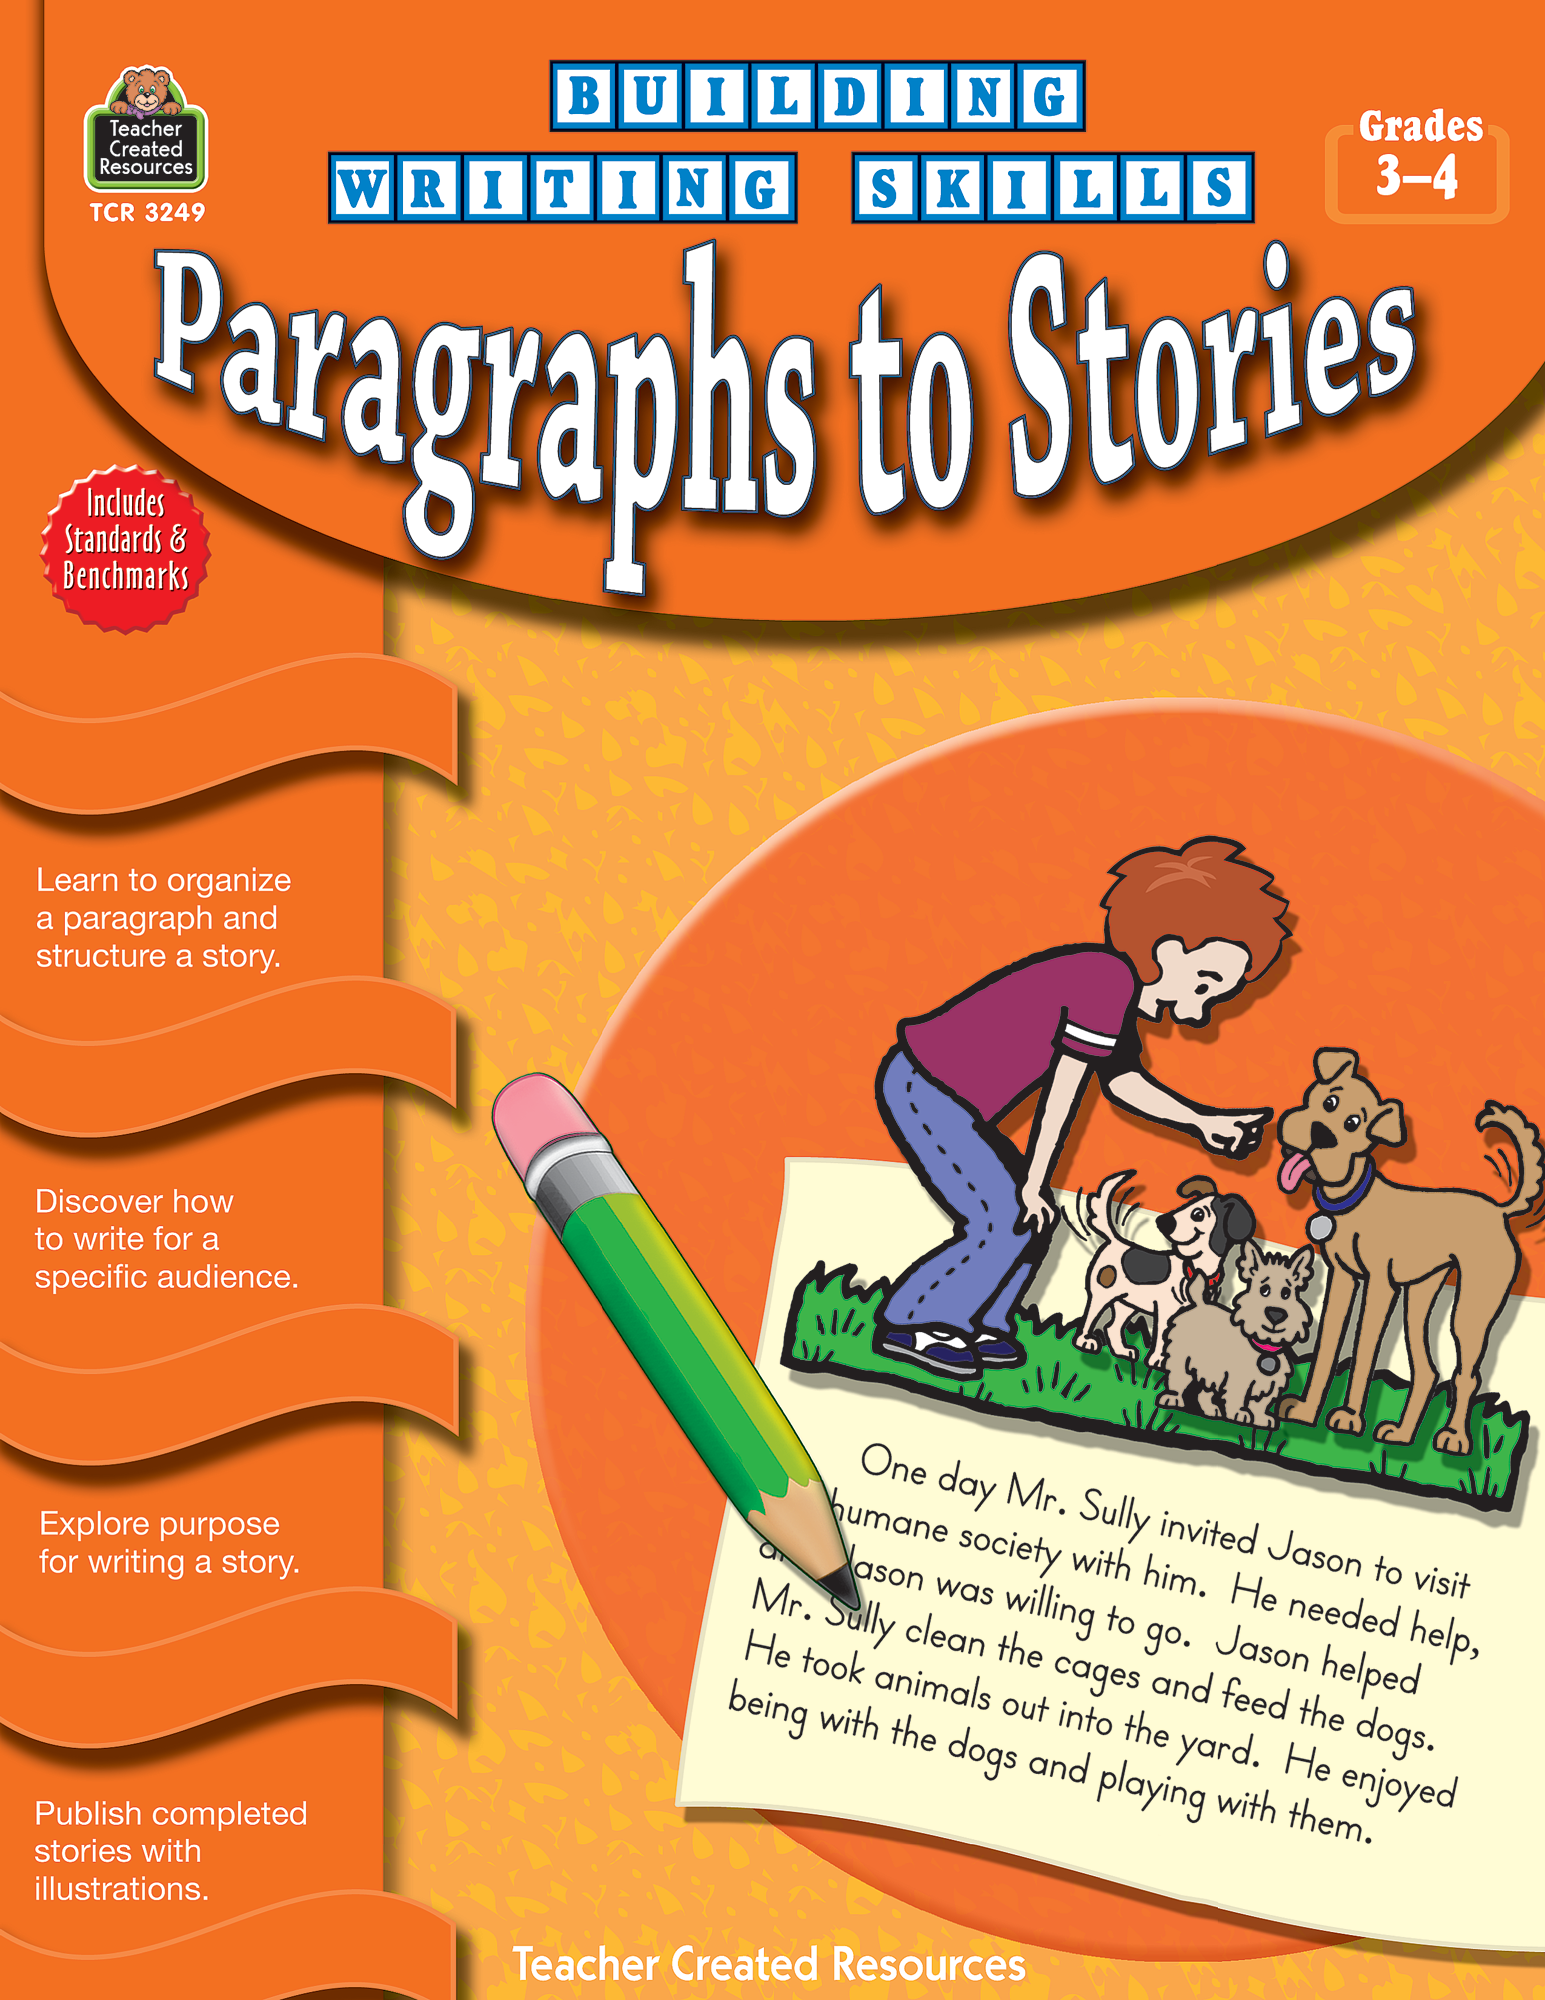 Building Writing Skills: Paragraphs to Stories (Gr. 3_4)